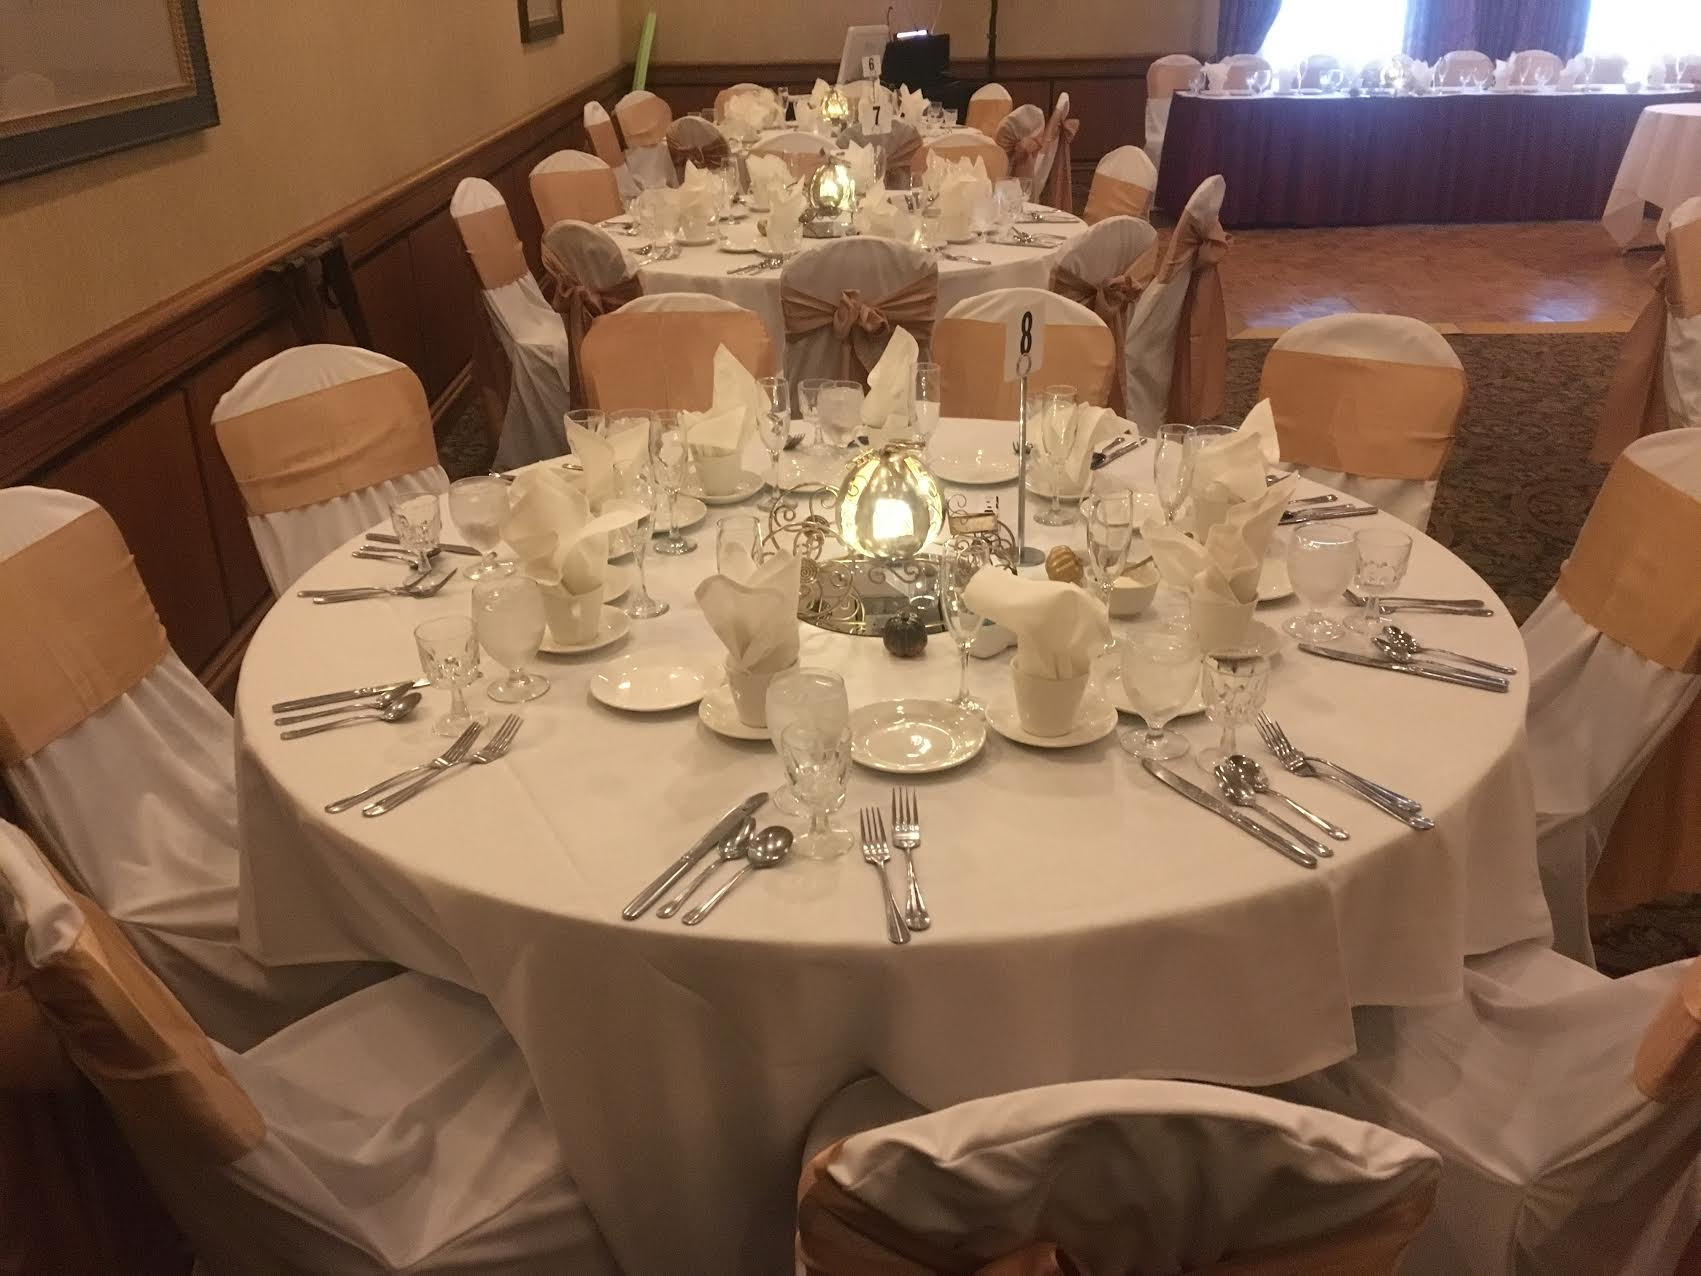 Colletti's Catering table chairs linens and plates